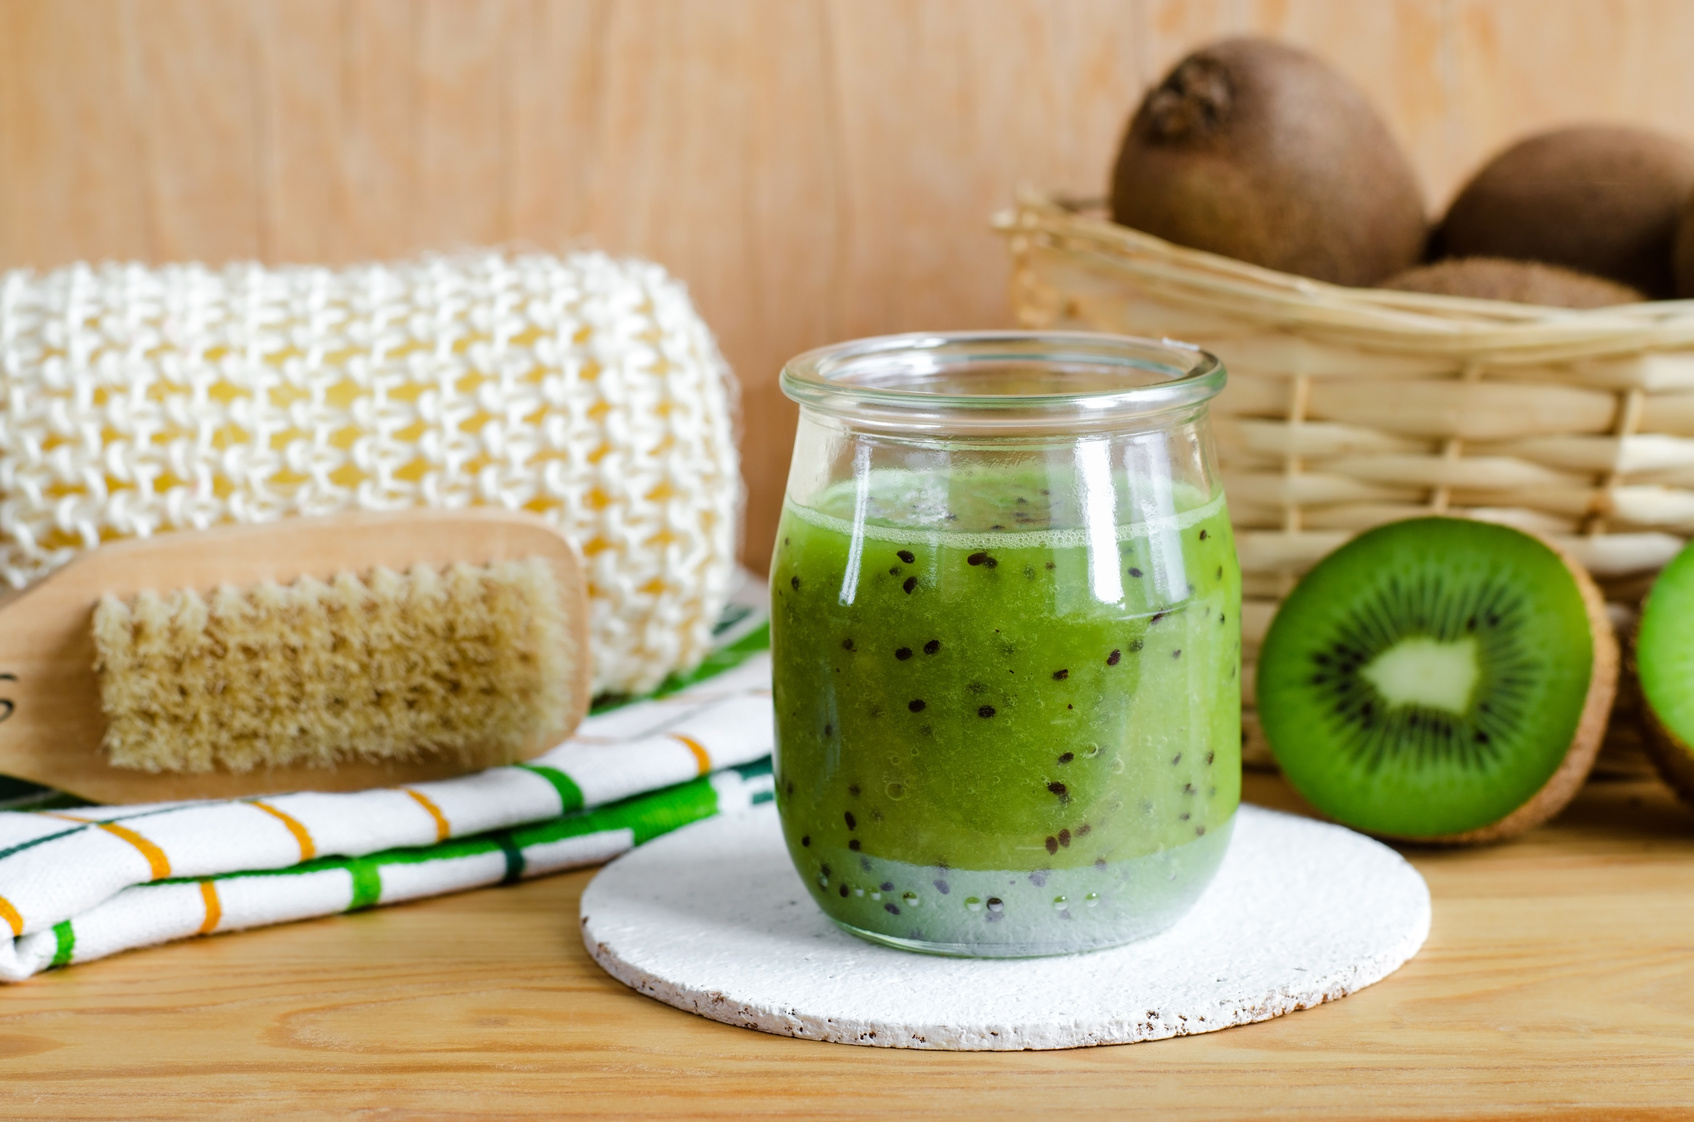 DIY: HOMEMADE KIWI SCRUB AND MASK!